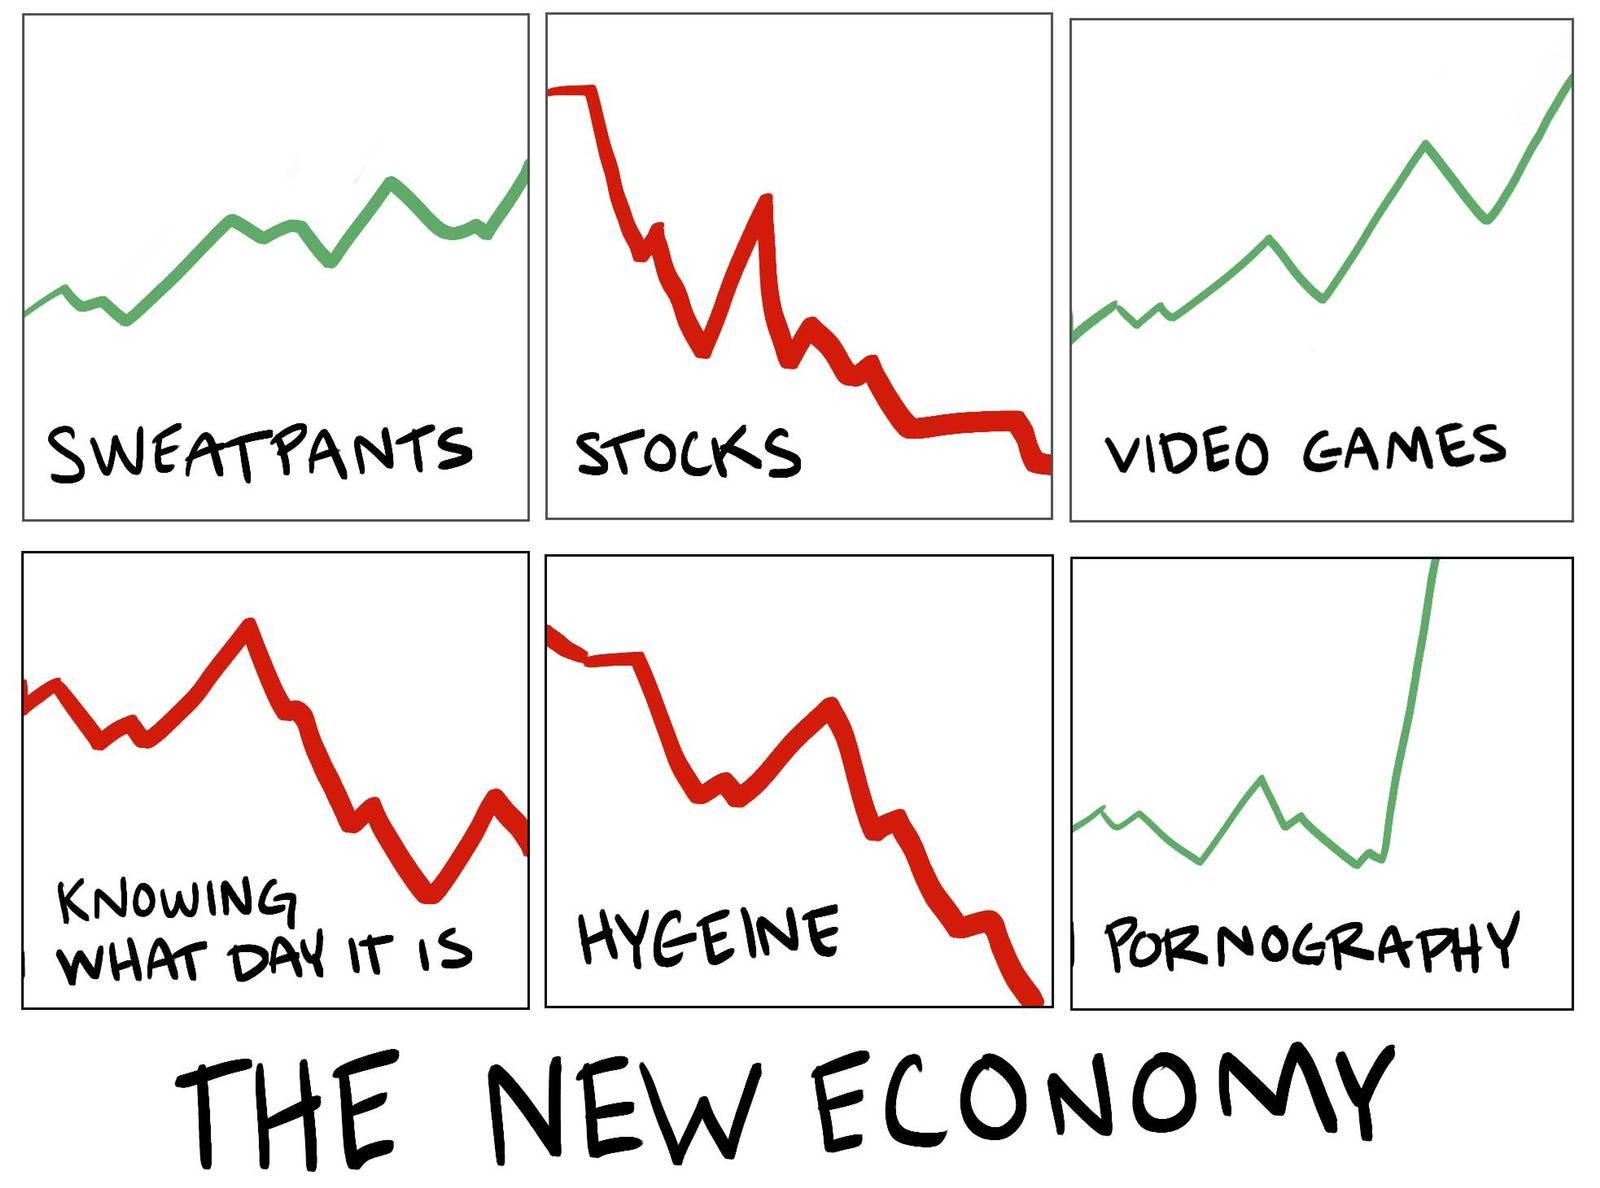 Coronavirus: The New Economy meme